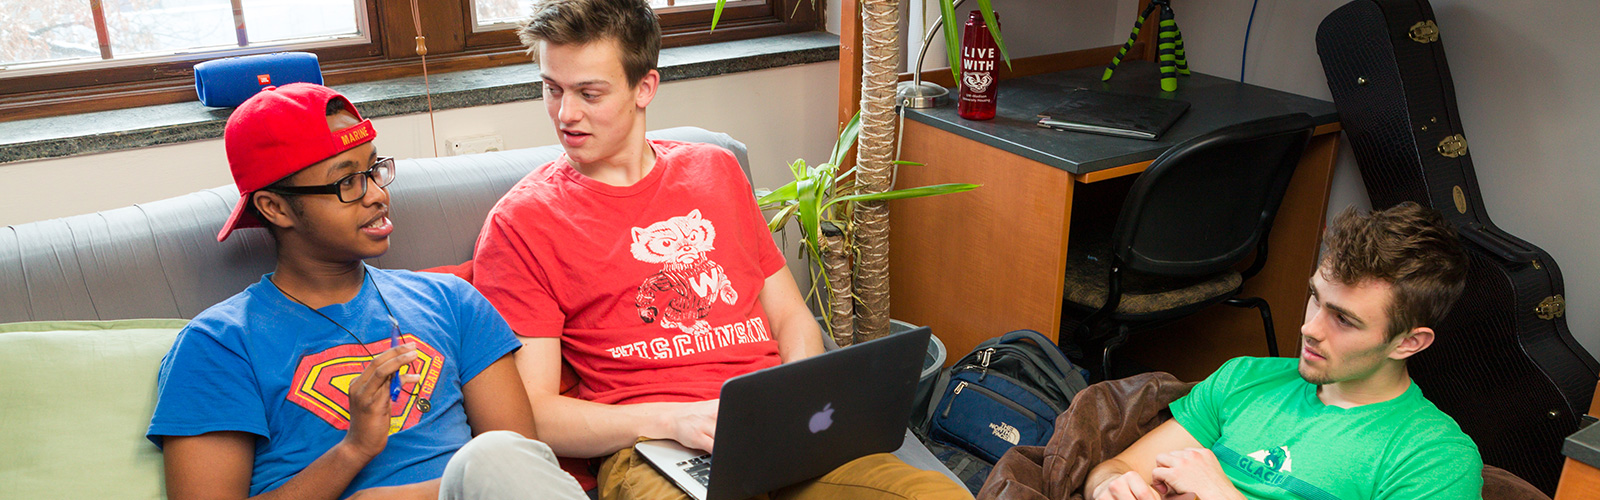 Students in a resident room in Kronshage Hall